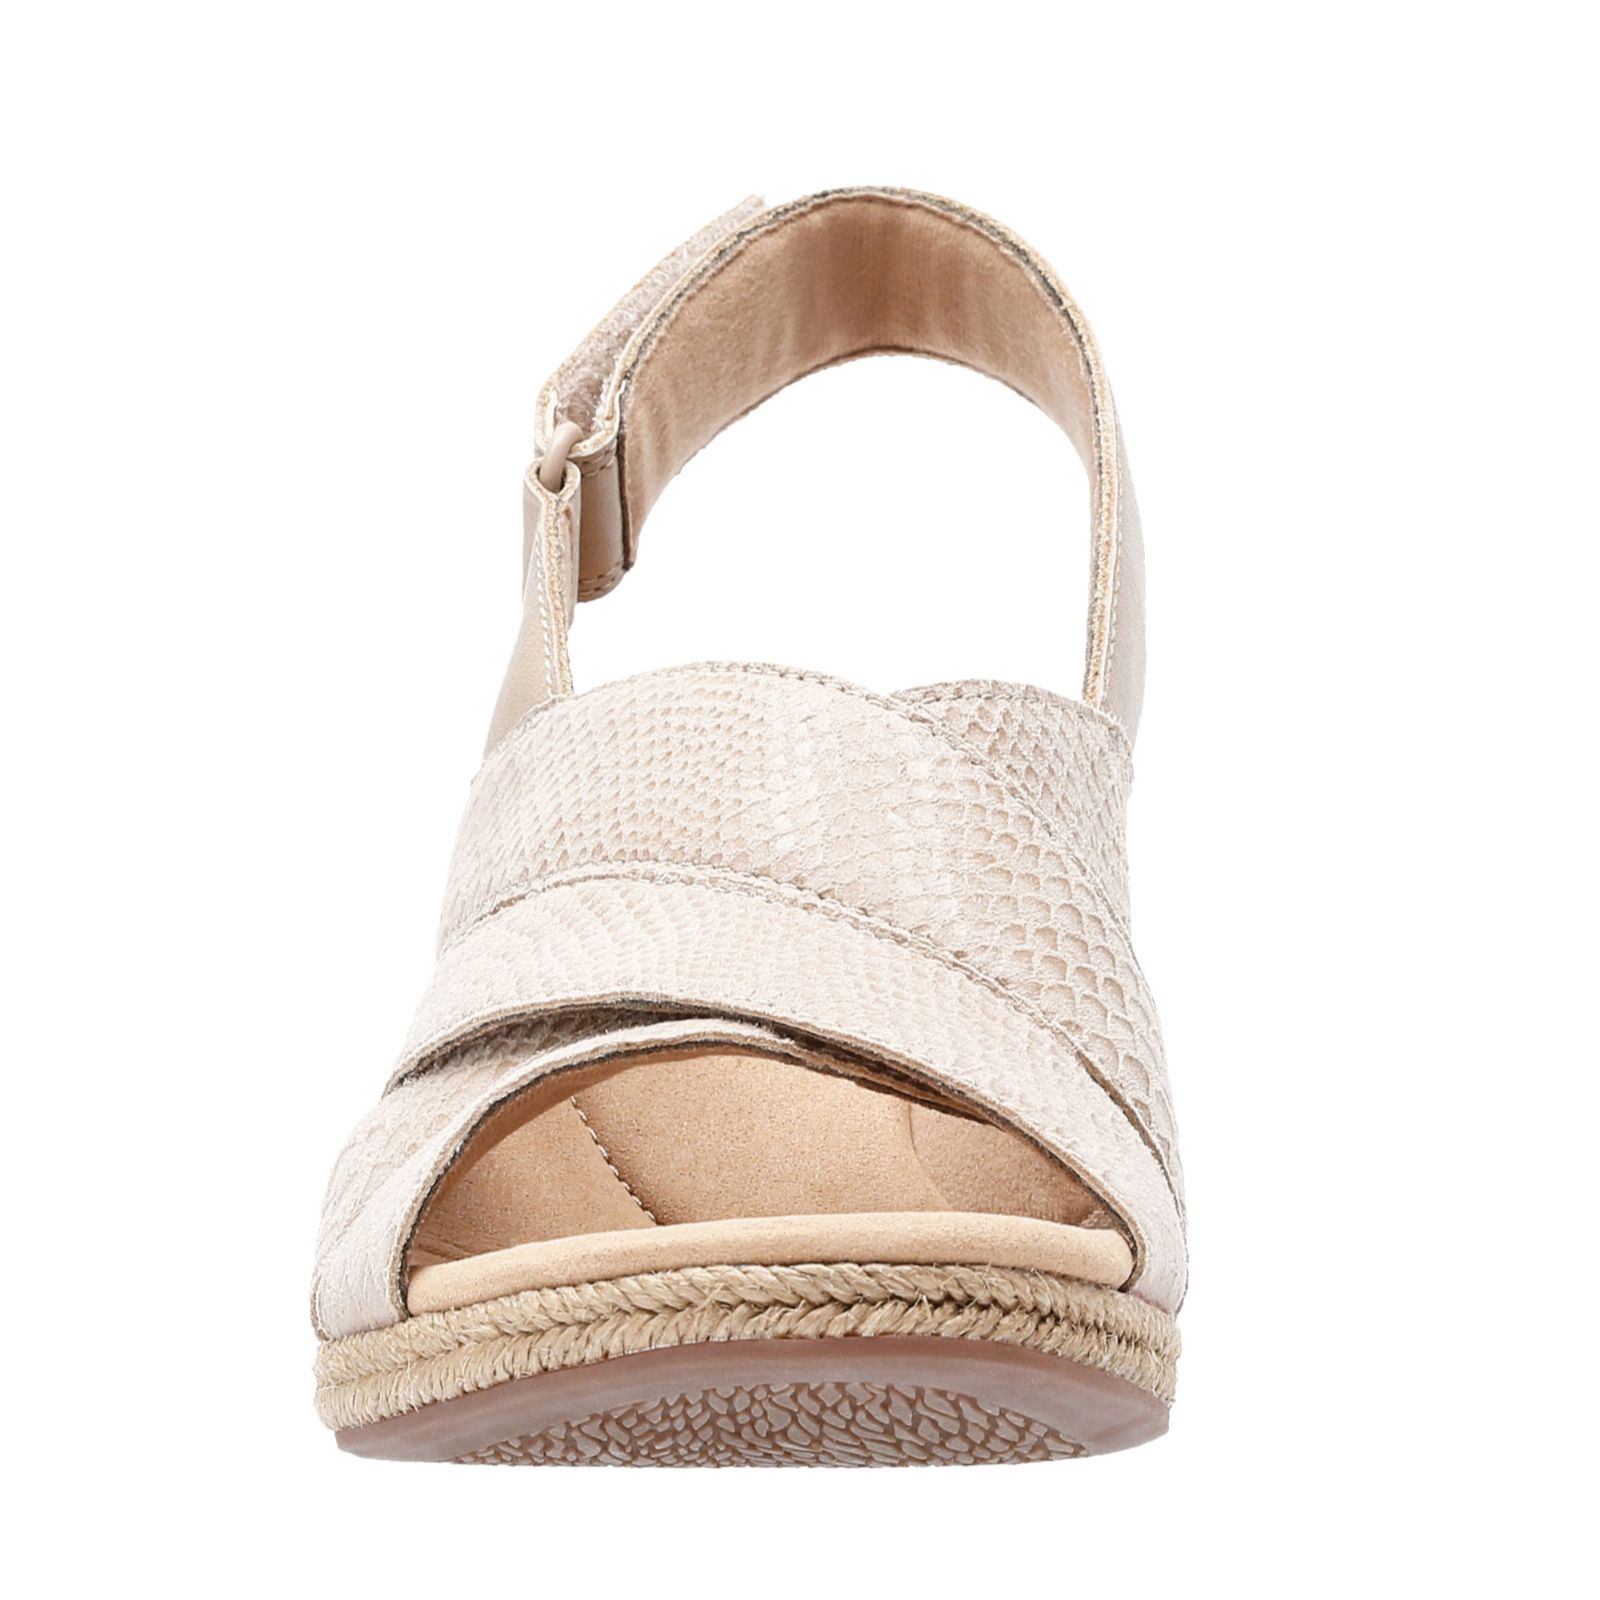 3bc21aa037df Clarks Lafely Krissy Wedge Sandal Standard Fit - QVC UK